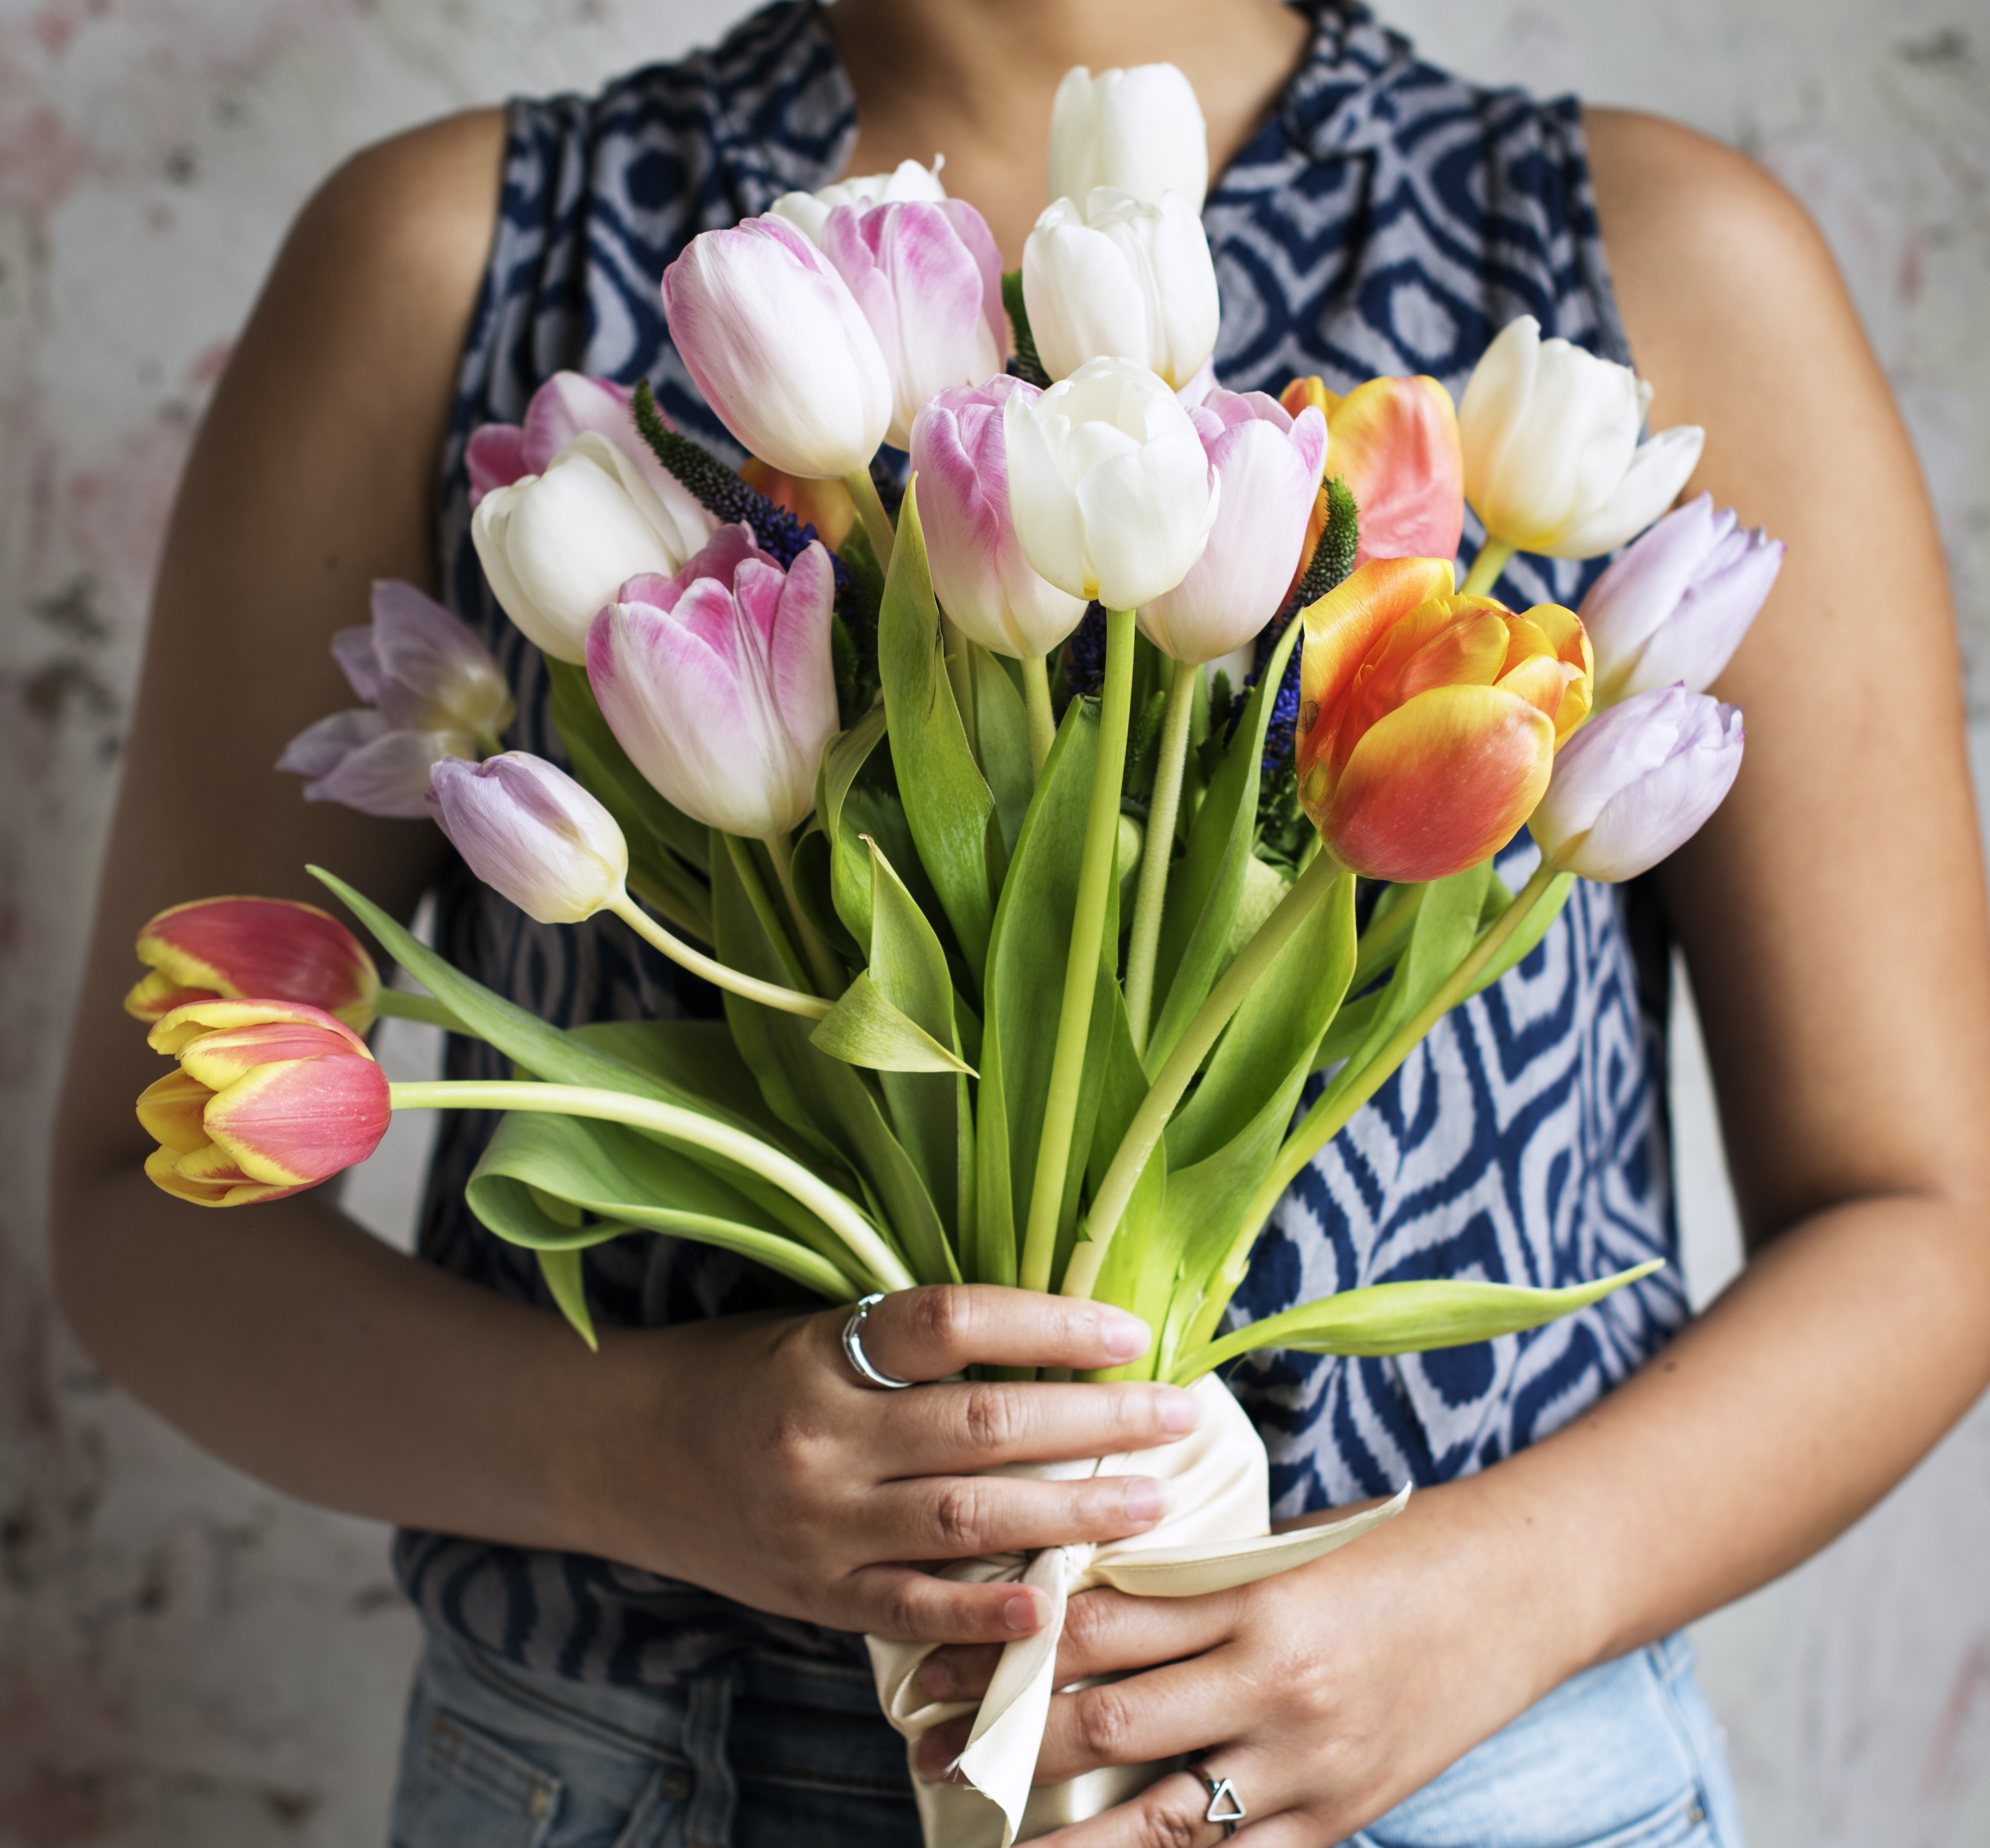 11 Creative Mother s Day Gifts That Are a Surefire Way to Mom s Heart